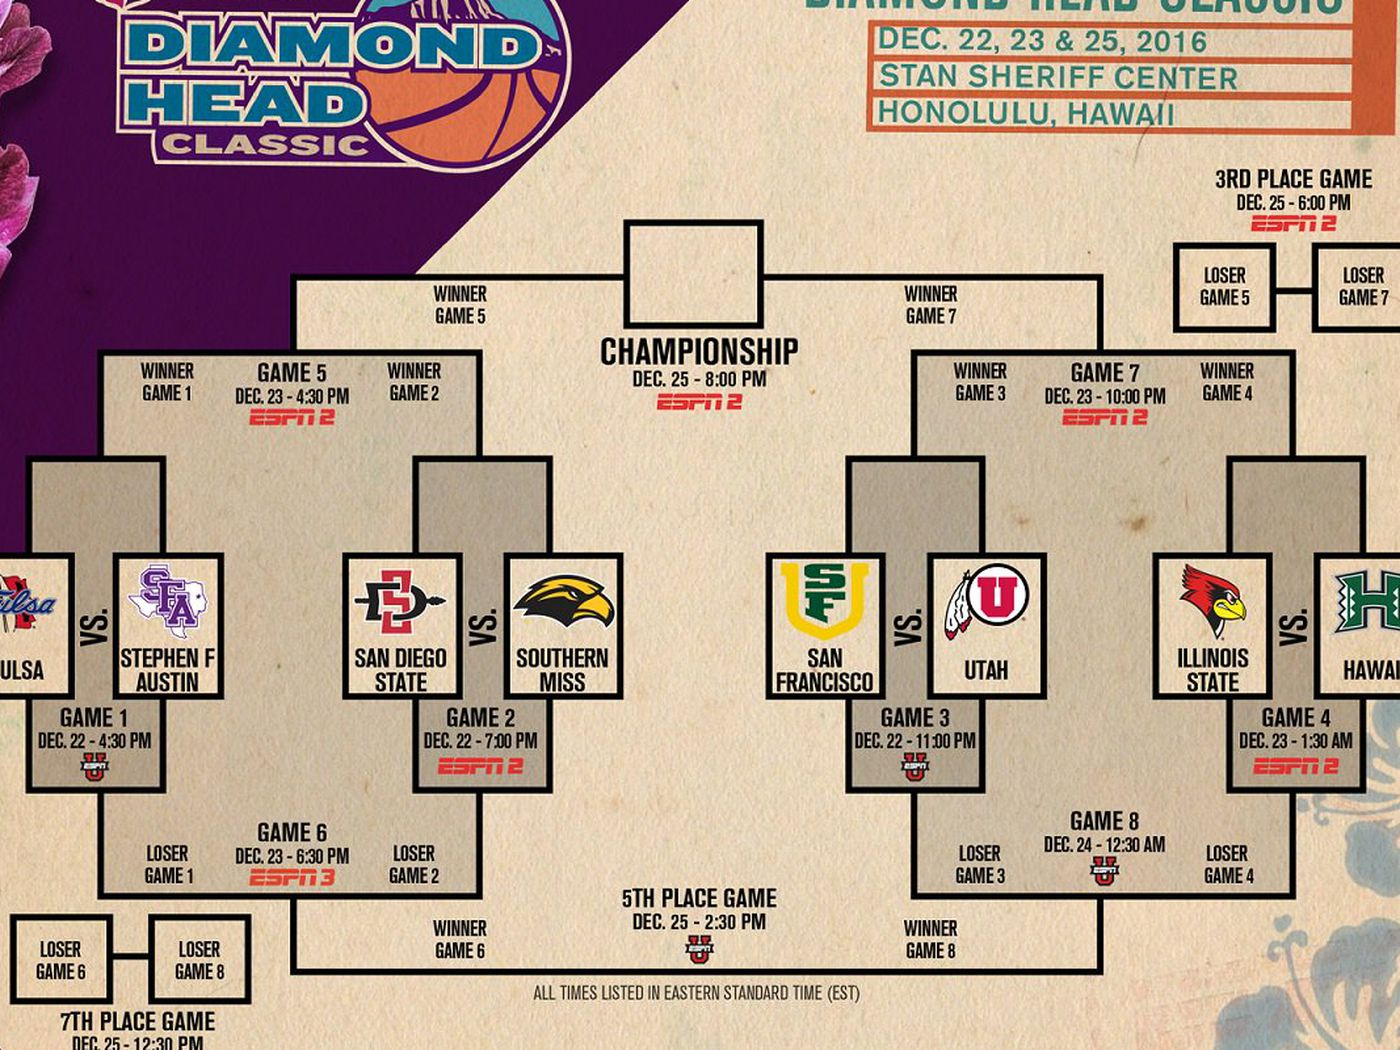 2016 Hawaiian Airlines Diamond Head Cl Ic Primer A Quartet Of 2016 Ncaa Teams Will Play In Honolulu Blogging Thecket